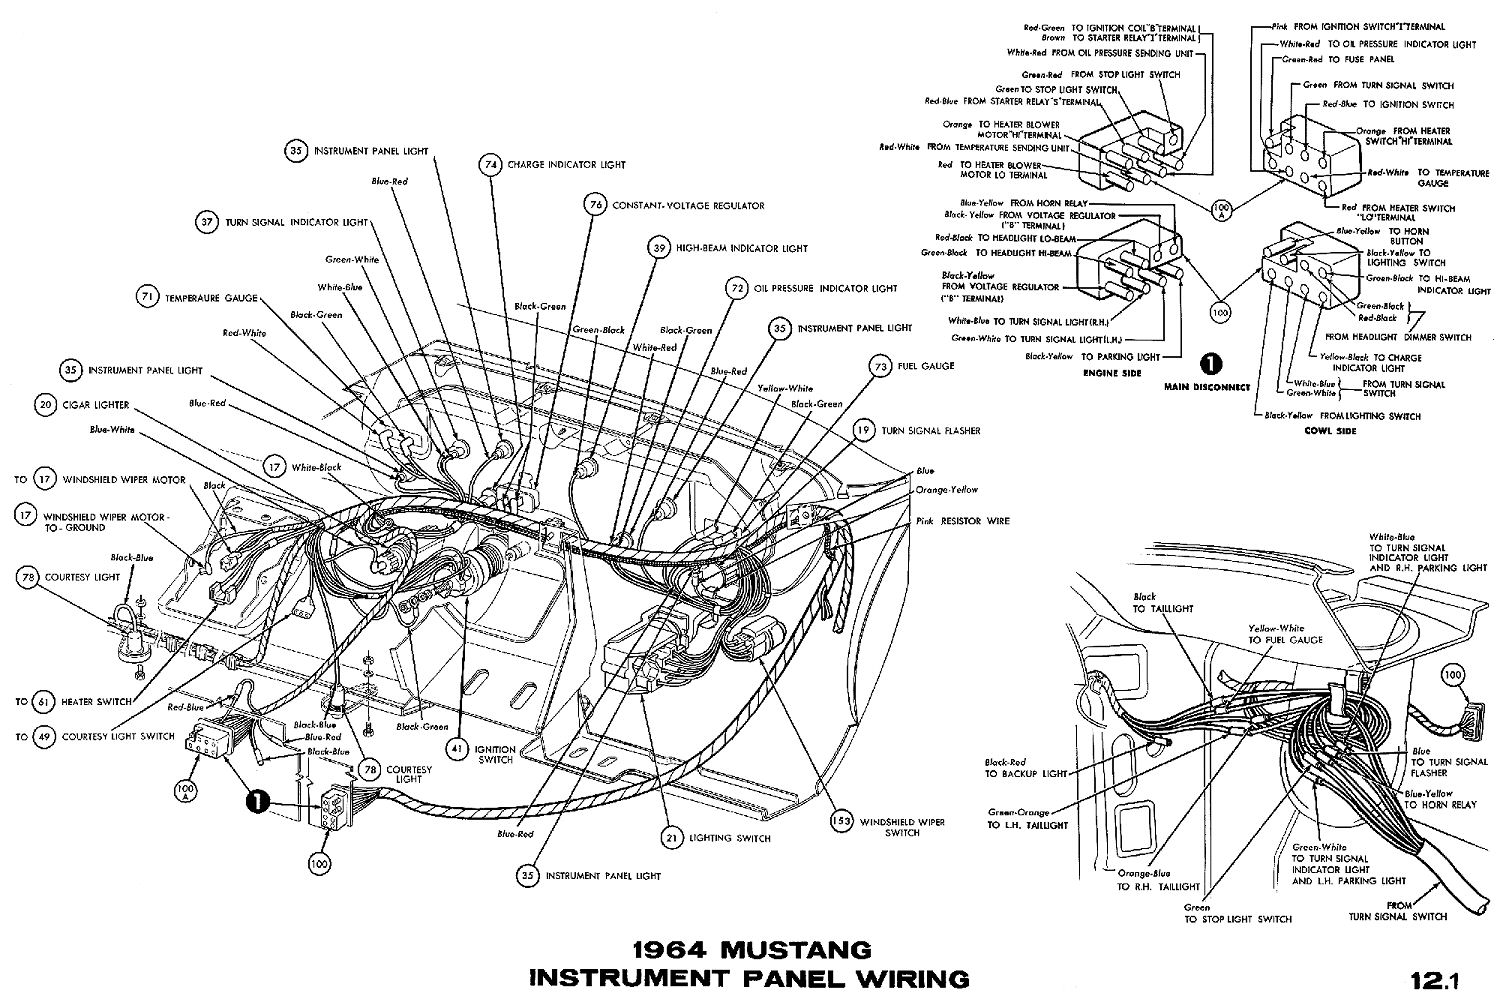 1964 Mustang Wiring Diagrams on 67 chevelle dash wiring diagram